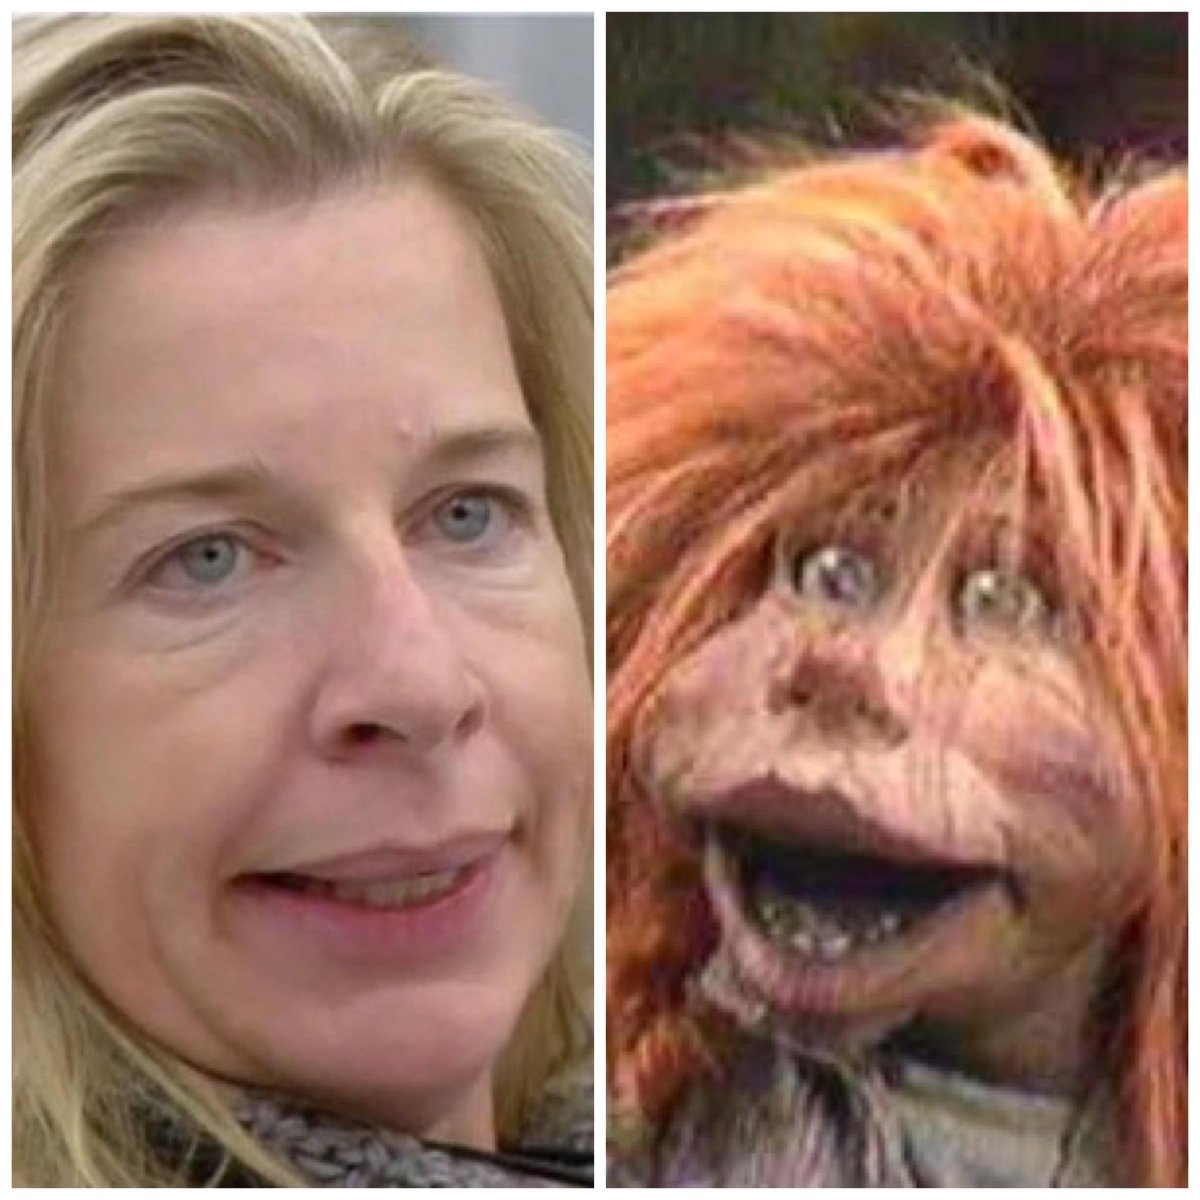 At last. I've figured out who Katie Hopkins reminds me of. A character from The Riddlers. #cbb http://t.co/KbGbdiH2u9